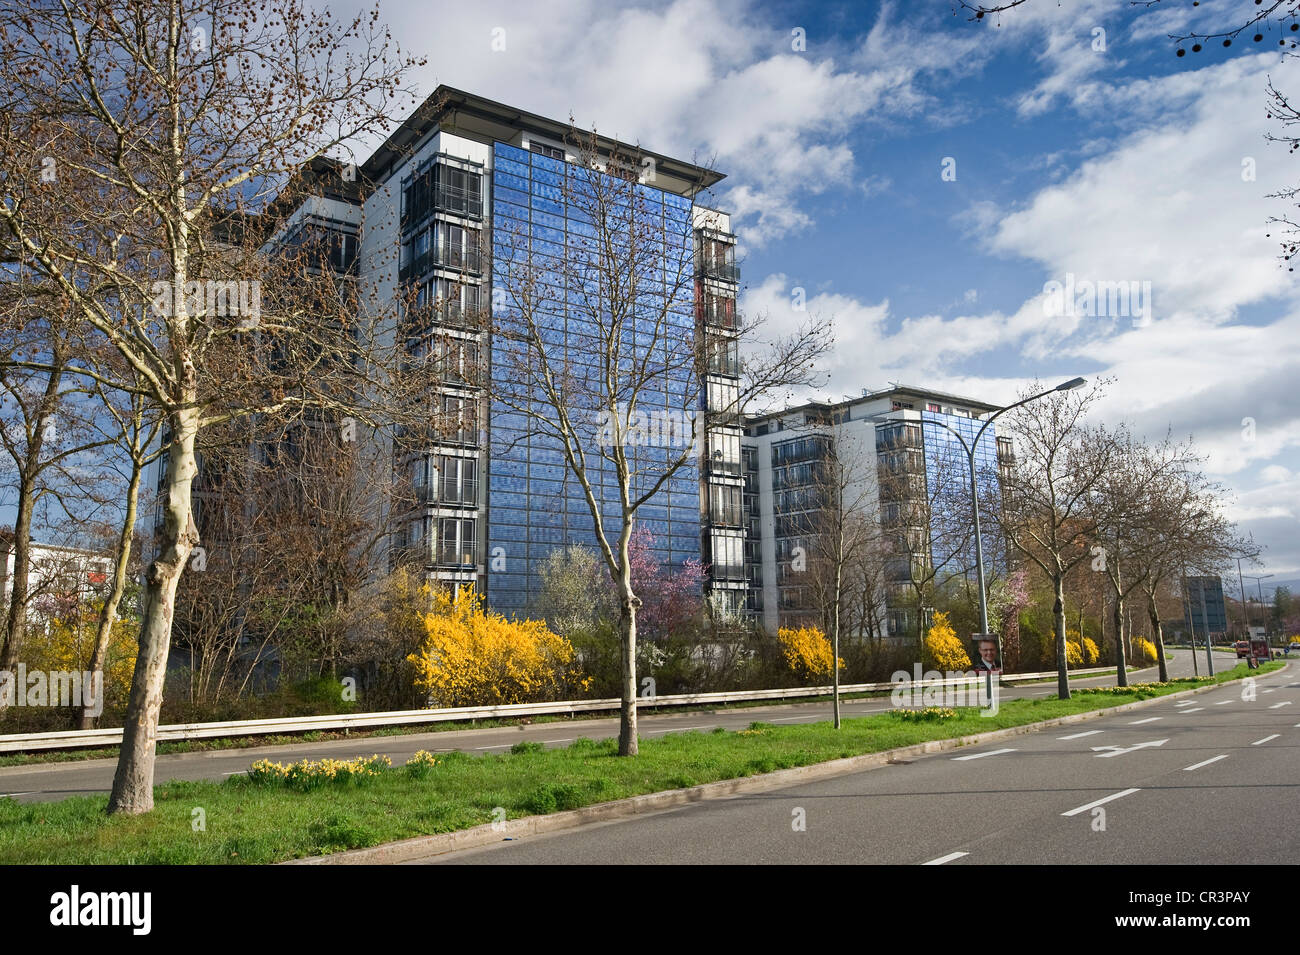 high rise building with a solar facade freiburg im breisgau stock photo 48641235 alamy. Black Bedroom Furniture Sets. Home Design Ideas